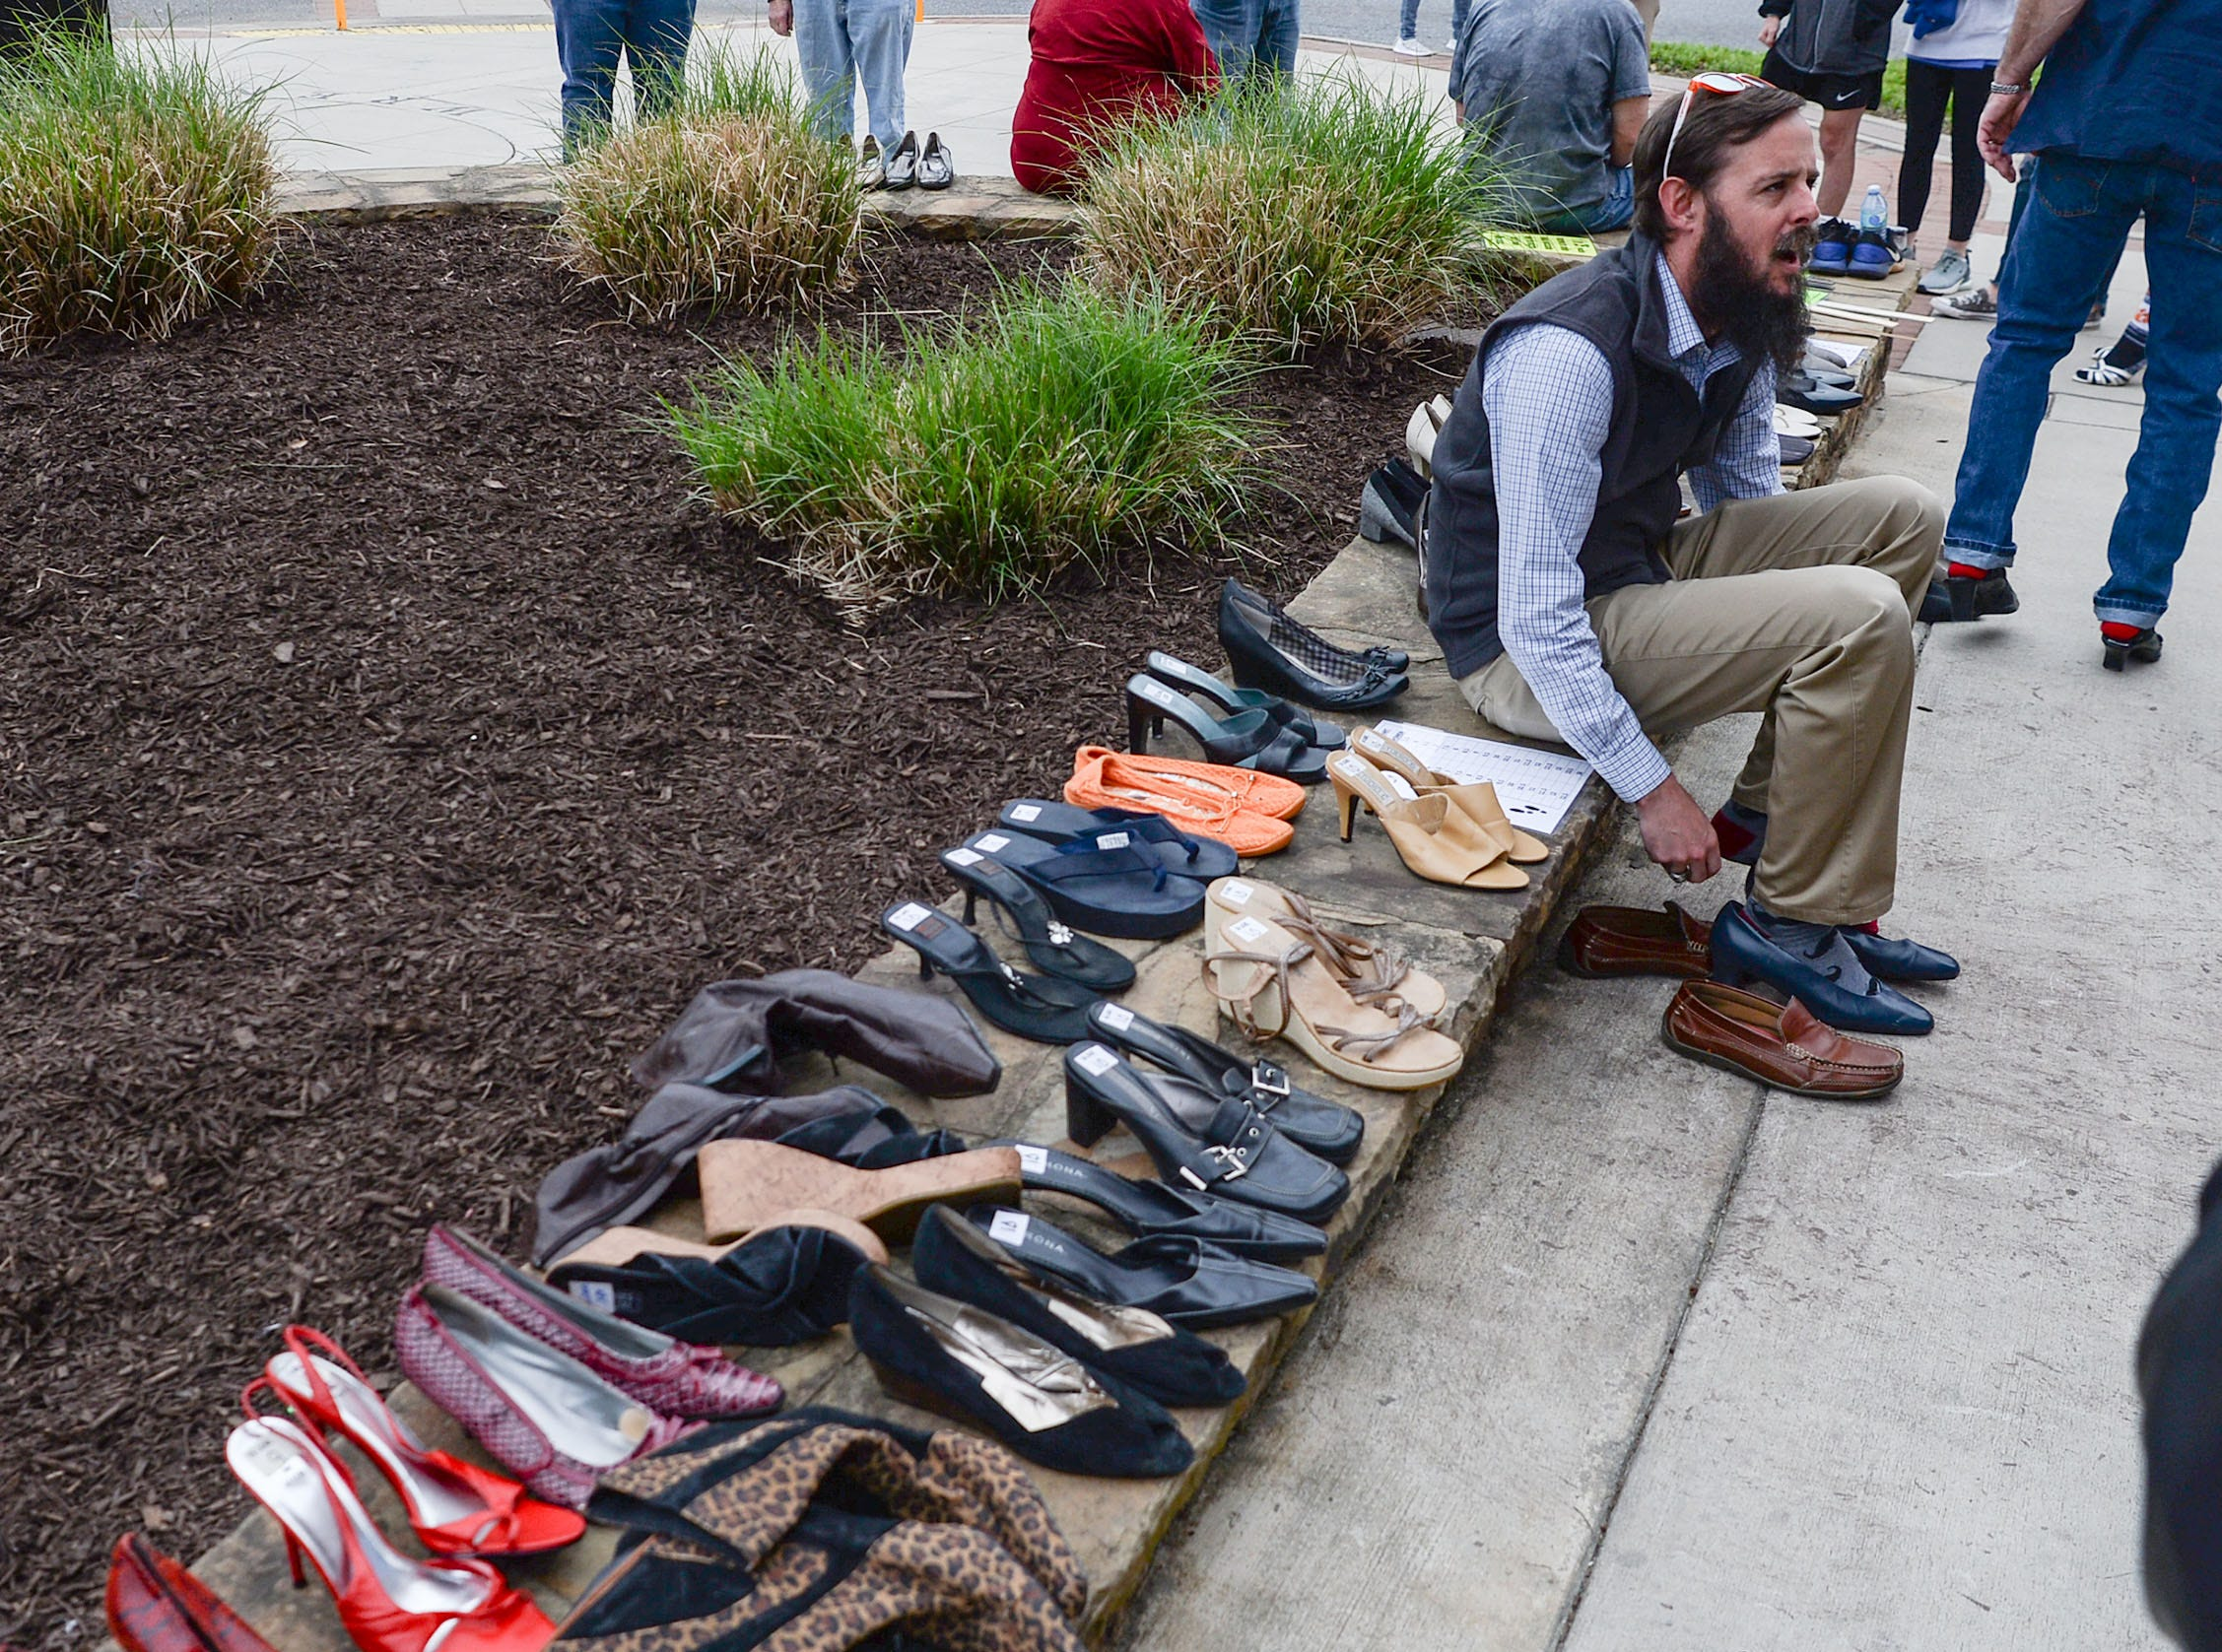 """Blake Sanders, West Pelzer mayor, puts on high-heels before the Foothills Alliance """"Walk a Mile in Her Shoes"""" event to bring awareness to National Sexual Assault Awareness Month, during a break in the Main Street Program Block Party music by Combo Kings at Carolina Wren Park in downtown Anderson Thursday."""